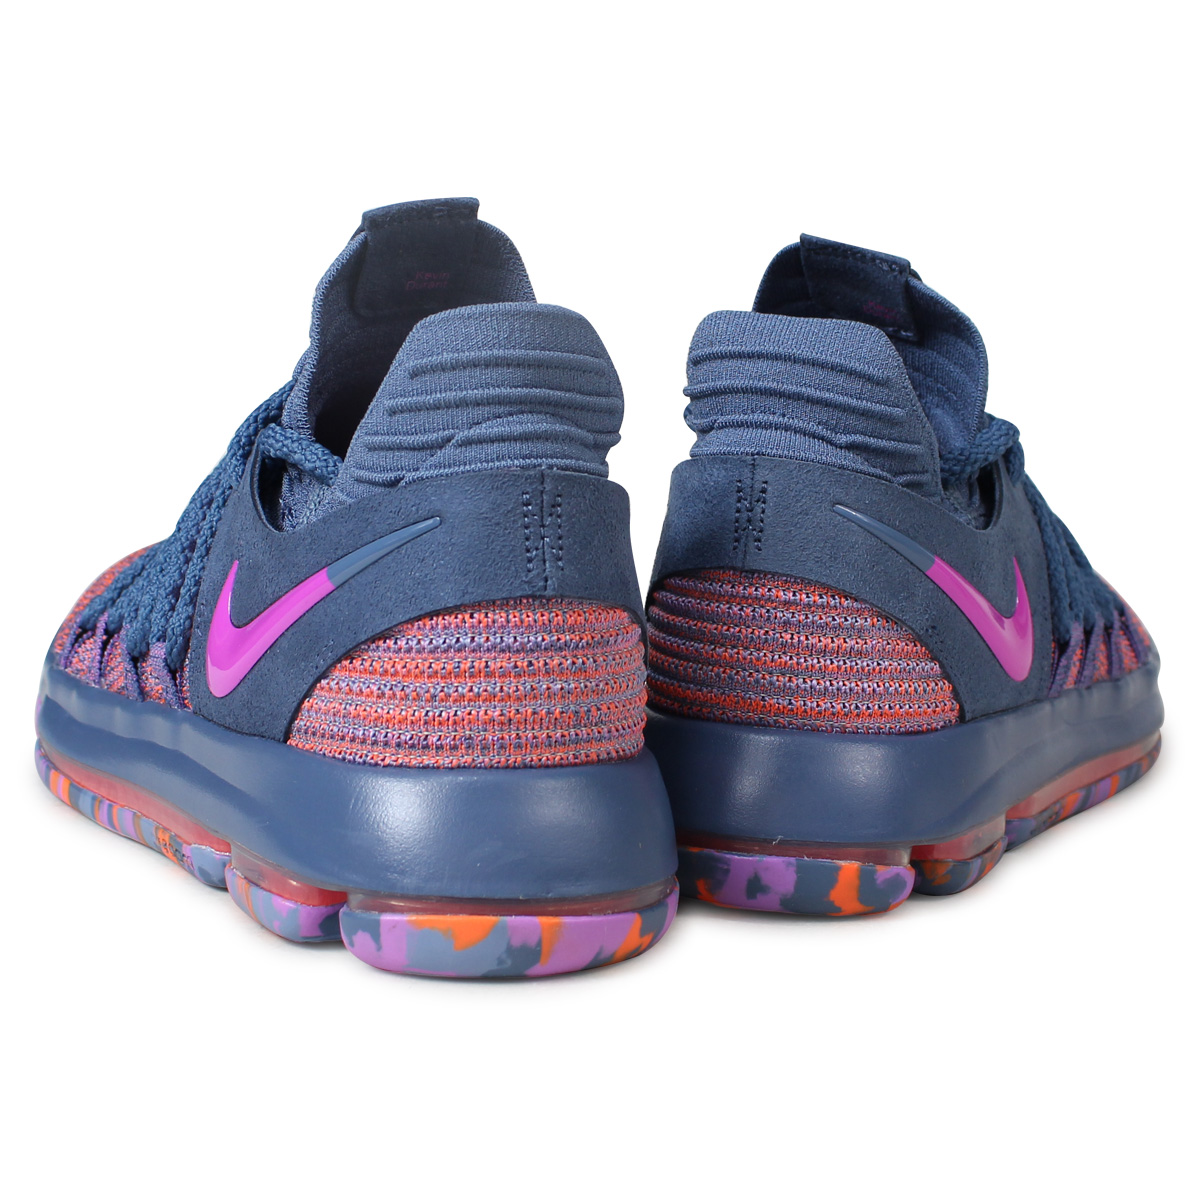 online store 2762e b6b02 NIKE ZOOM KD 10 ALL-STAR Nike KD 10 sneakers men 897,817-400 ケンビュラントネイビー  [185]